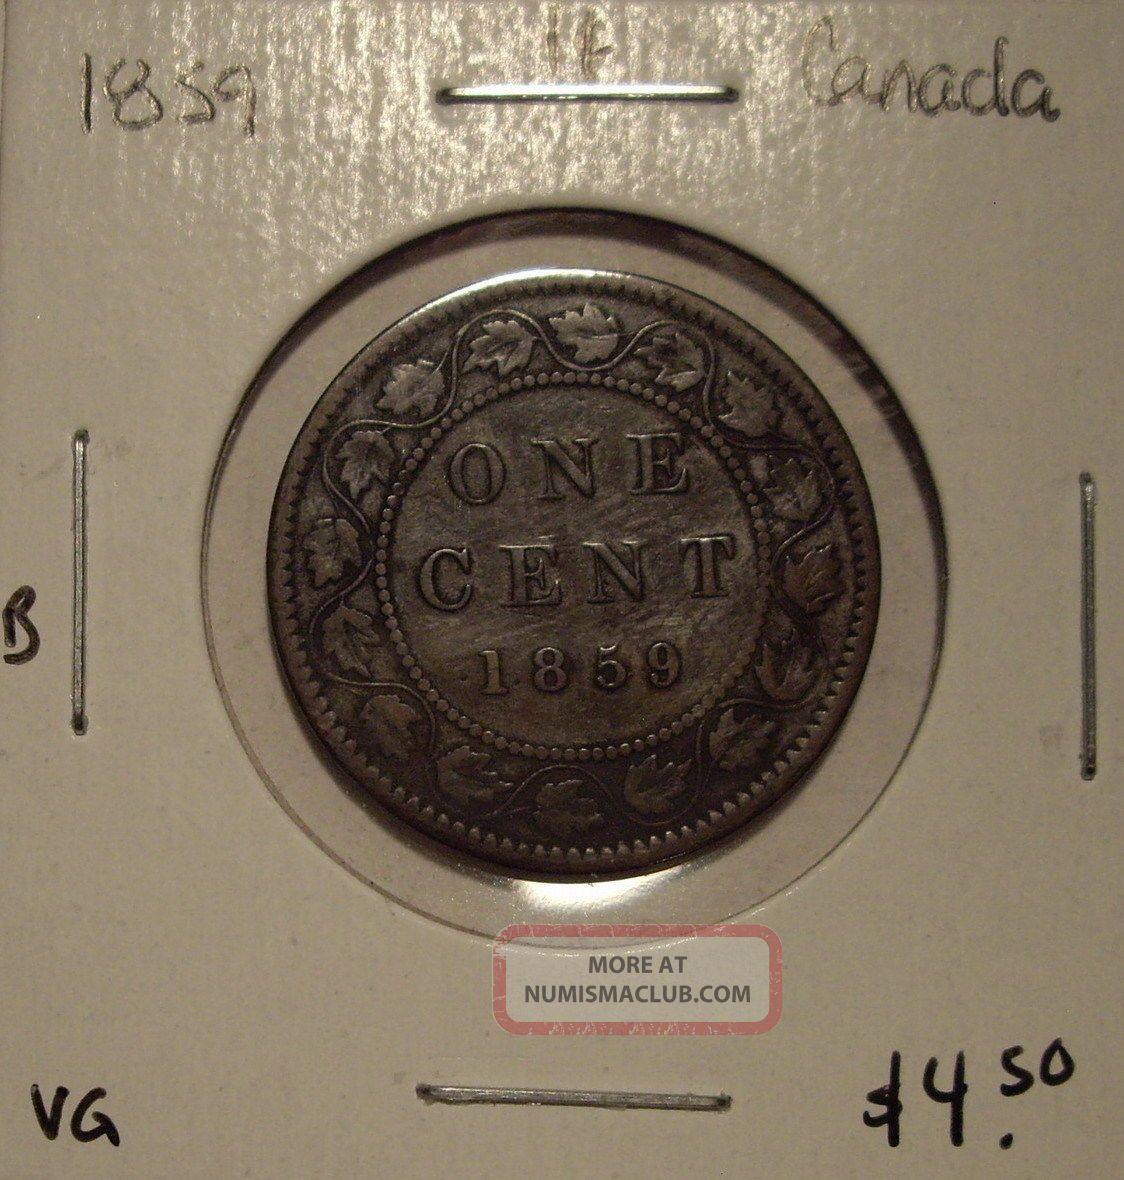 B Canada Victoria 1859 Large Cent - Vg Coins: Canada photo